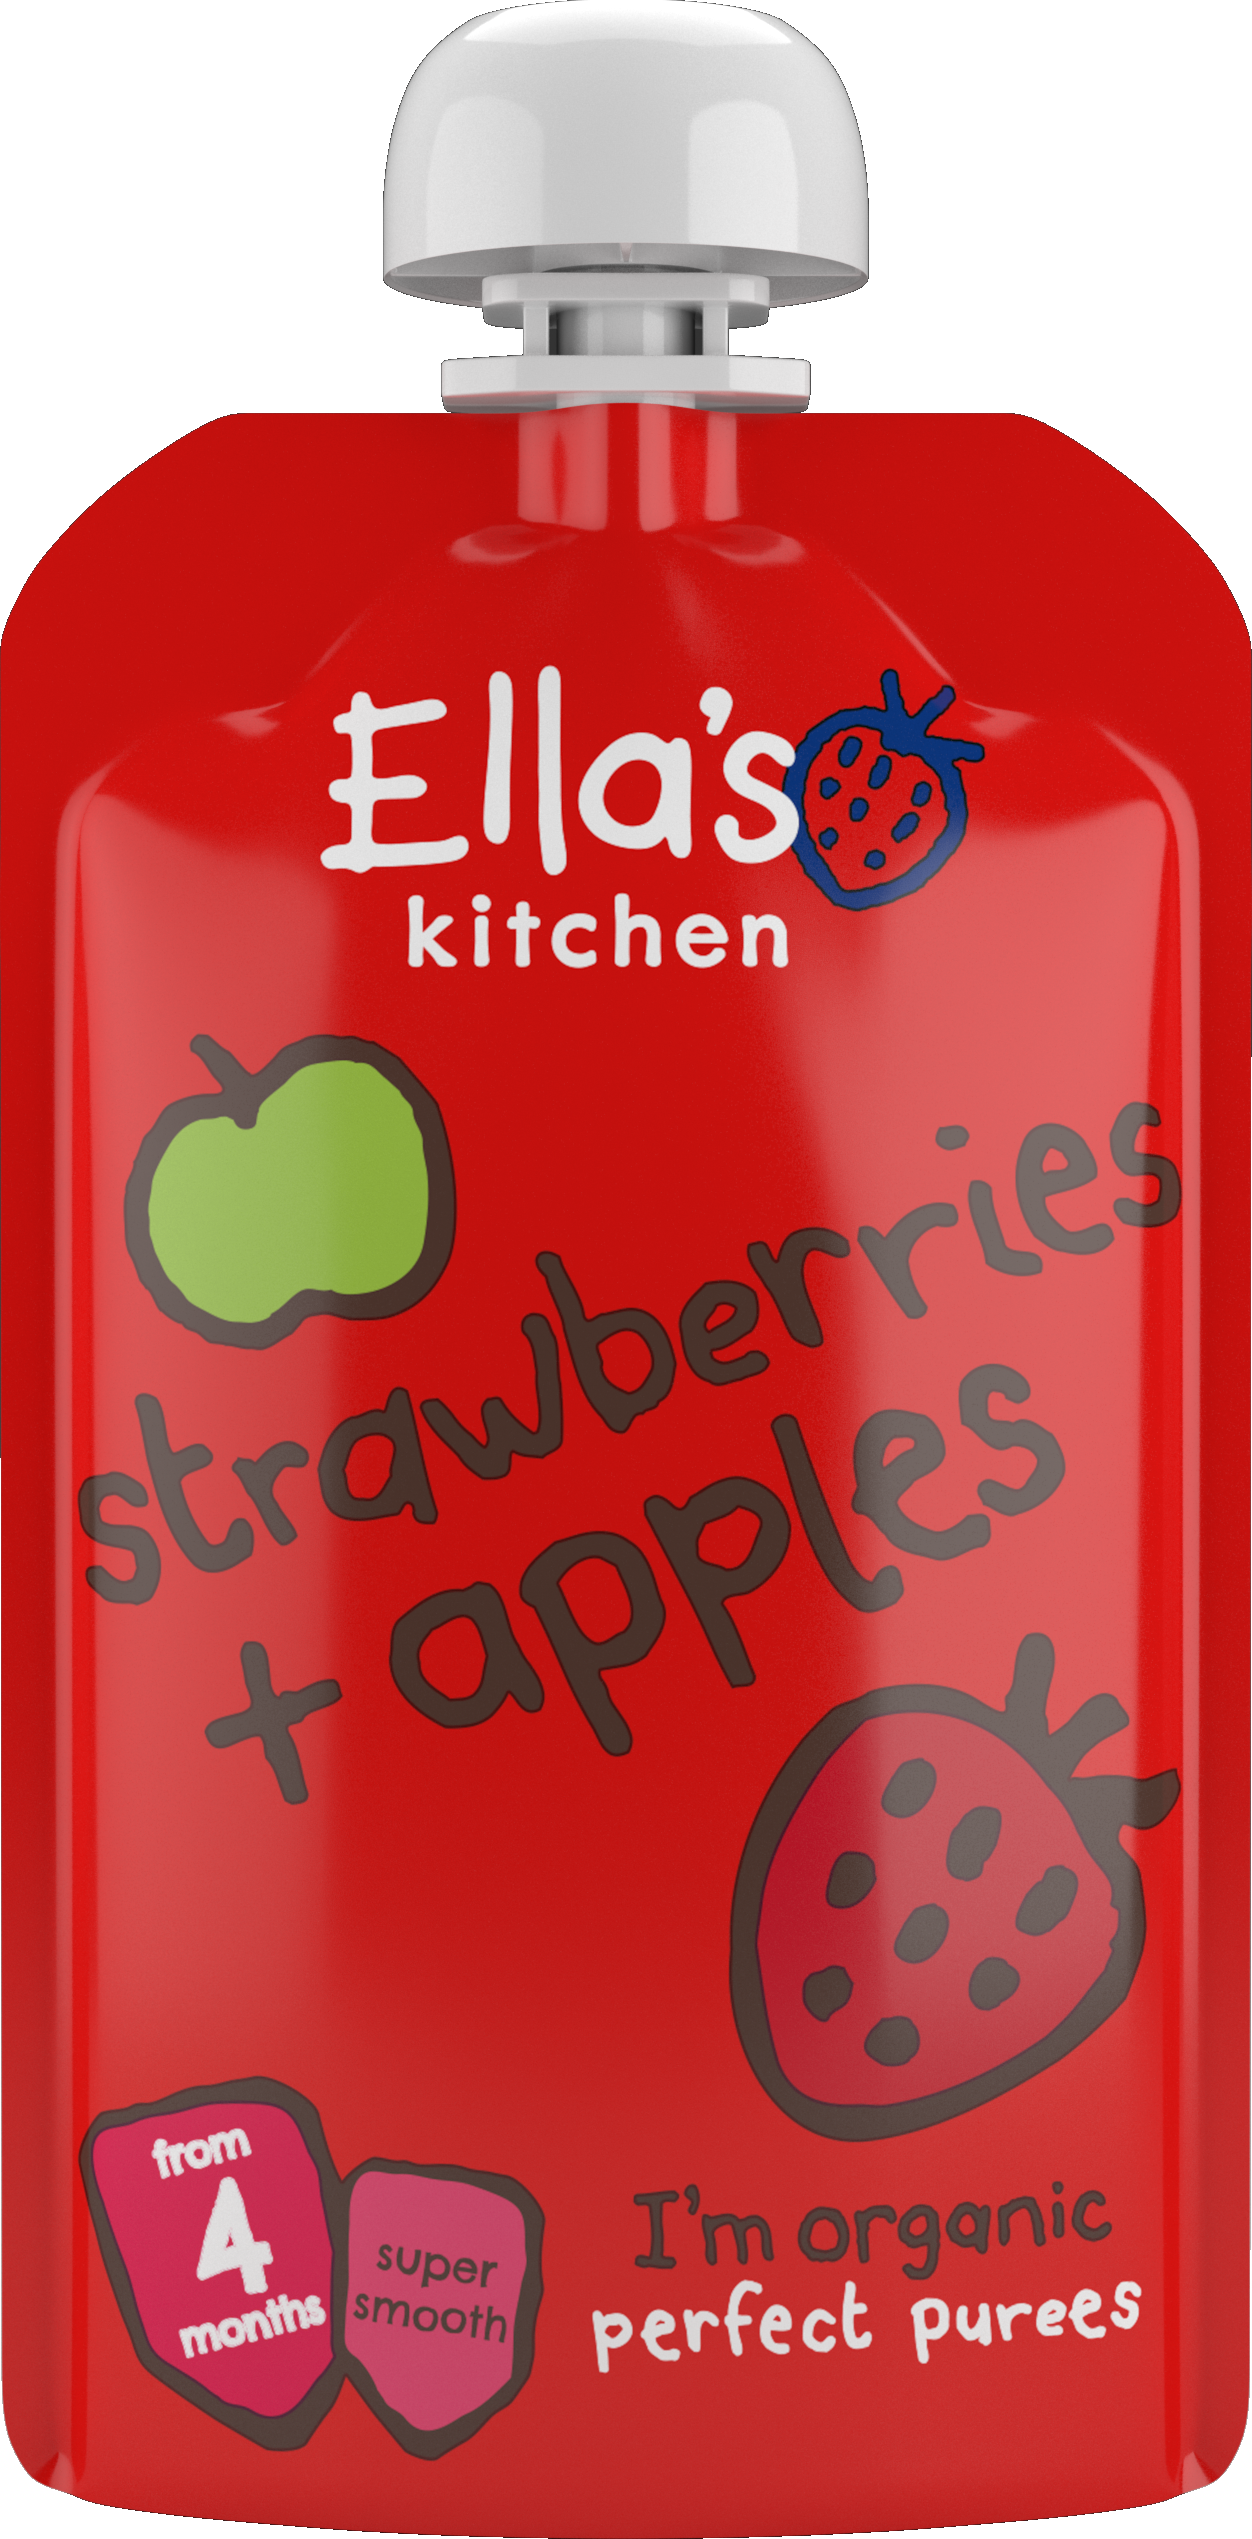 Ellas kitchen strawberries apples puree pouch front of pack 2 jpg